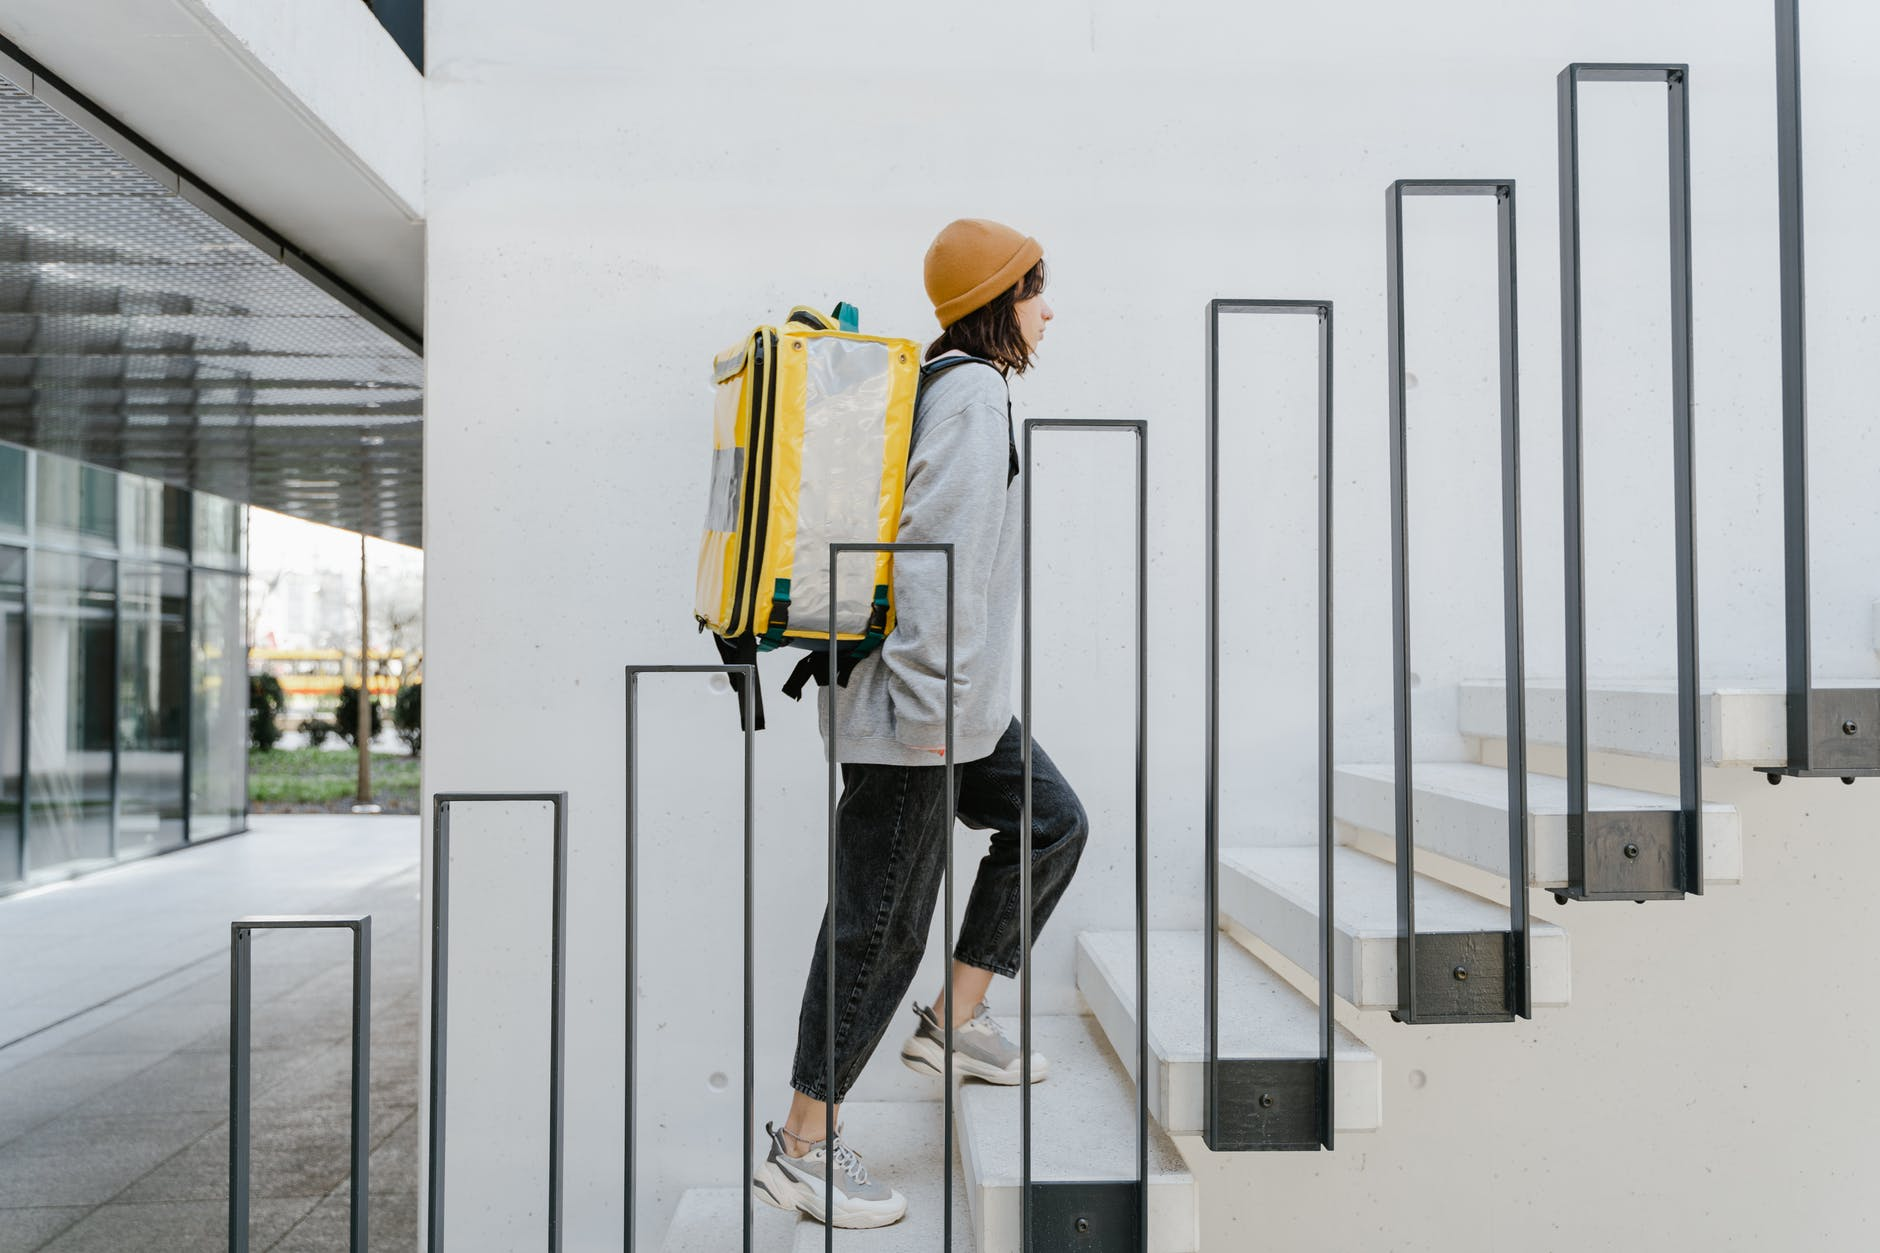 delivery person going up the stairs